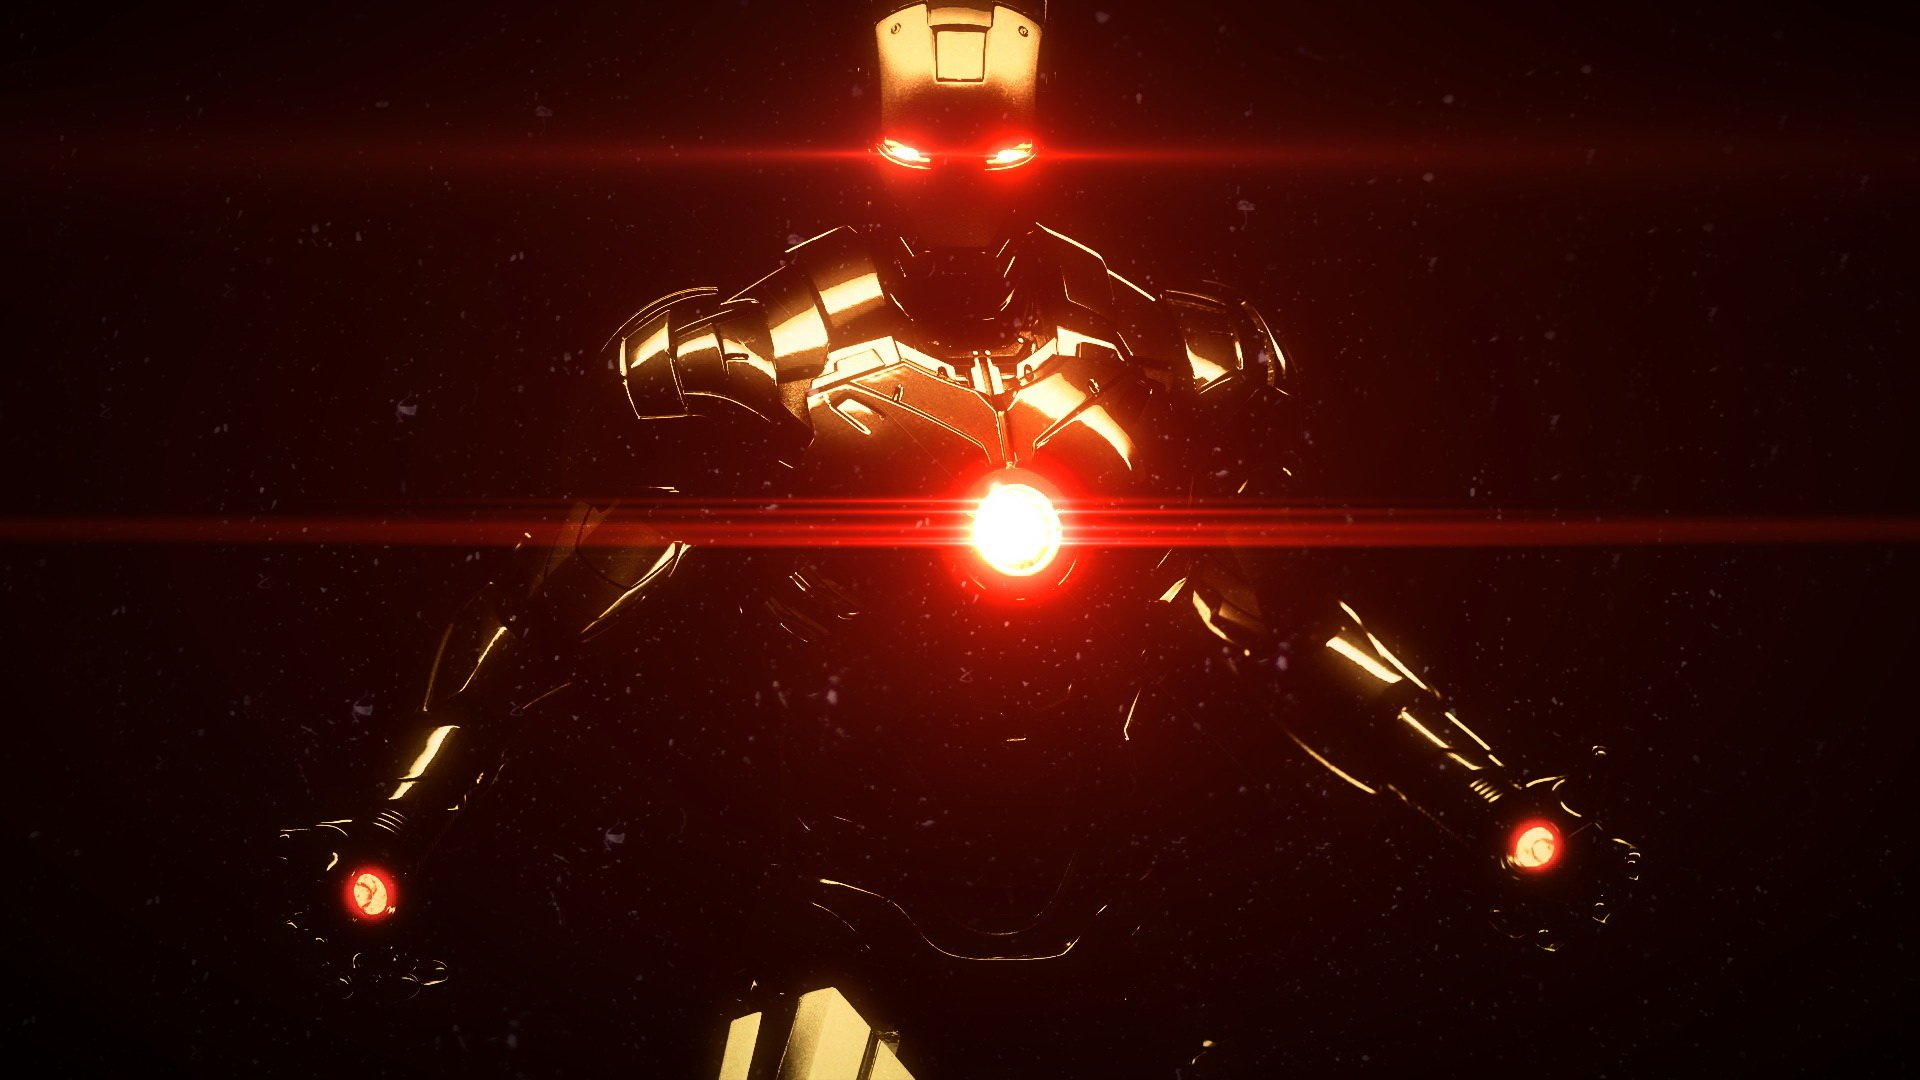 Android Wallpaper 3d Live Pc Download Iron Man Ultra Hd Wallpapers Gallery